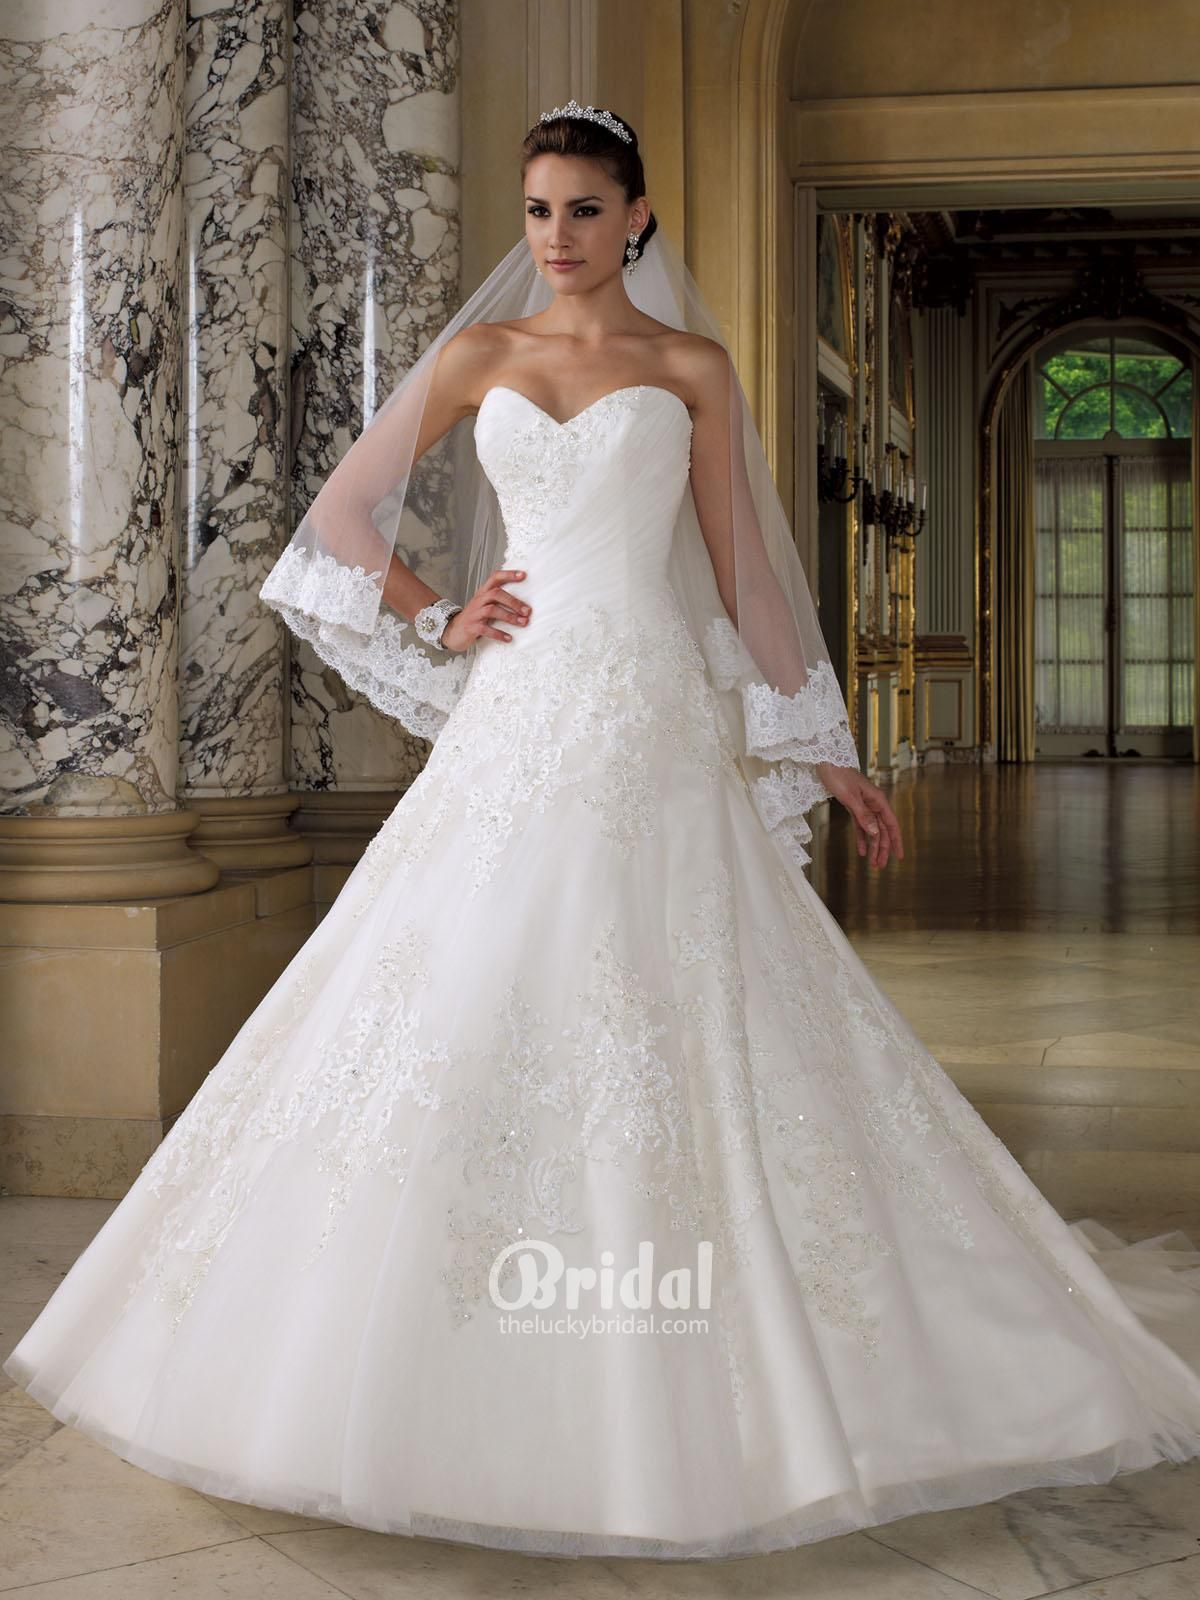 Dipped wedding dress  Sweetheart Strapless Gorgeous Wedding Dress with Embroidered Beaded